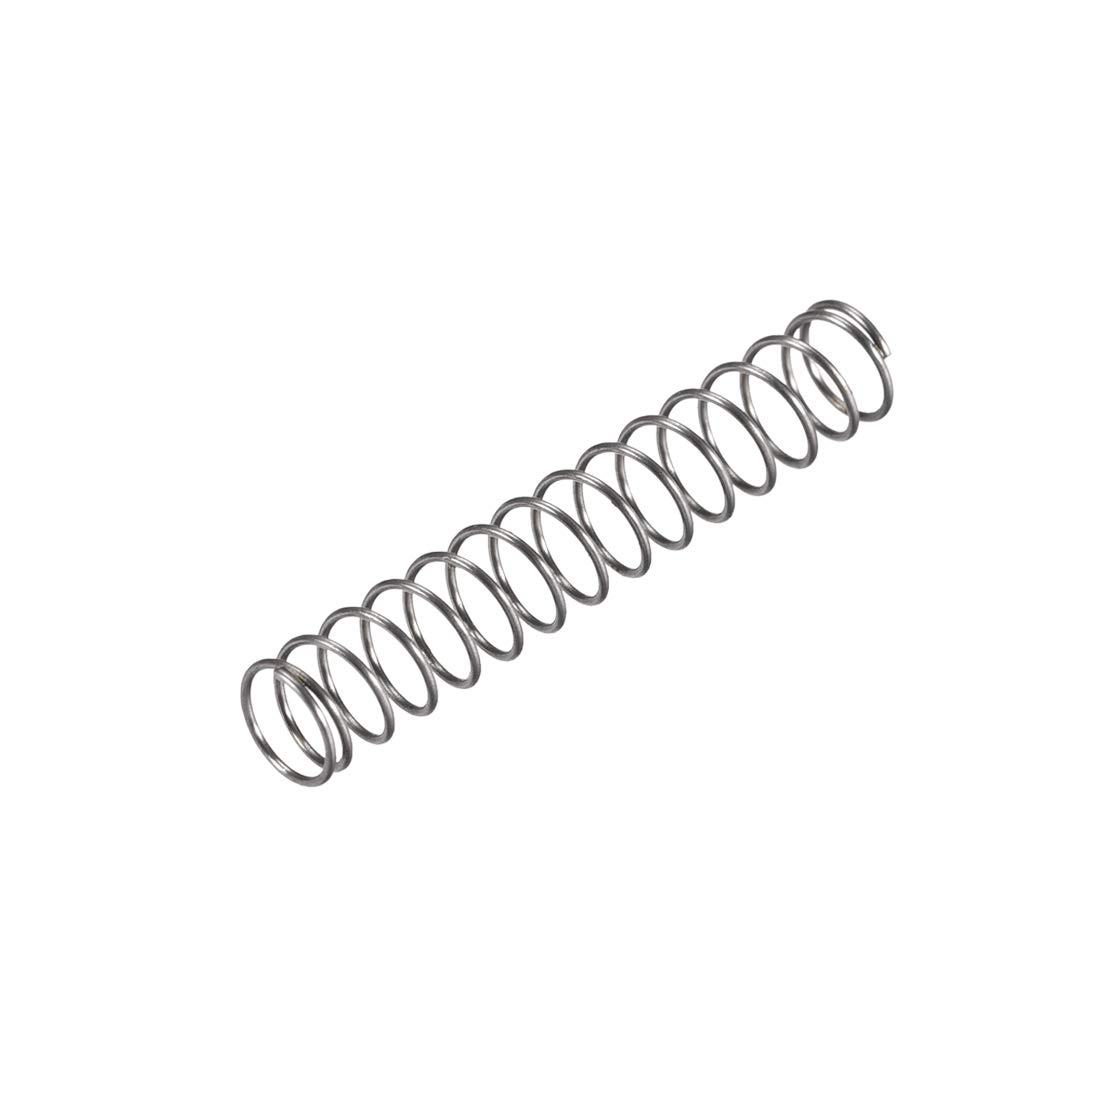 uxcell Compression Spring,6mm OD, 0.5mm Wire Size, 19.25mm Compressed Length, 35mm Free Length,8N Load Capacity,Gray,10pcs